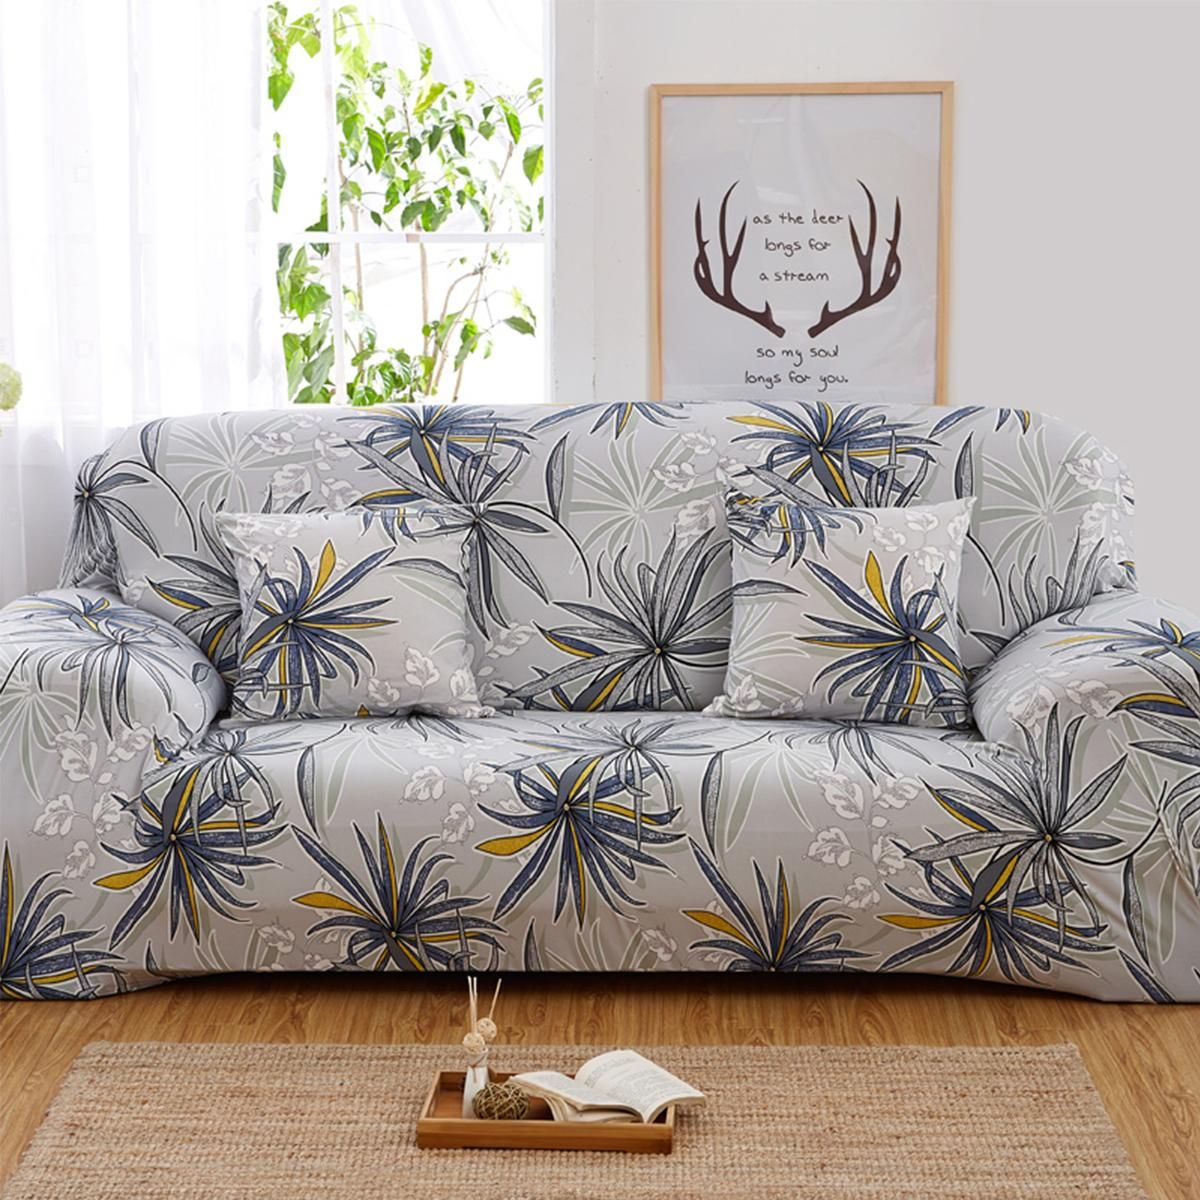 10 Sofa Cover Malaysia Most Of The Awesome As Well As Stunning Arm Chairs Living Room Sofa Covers Cushions On Sofa